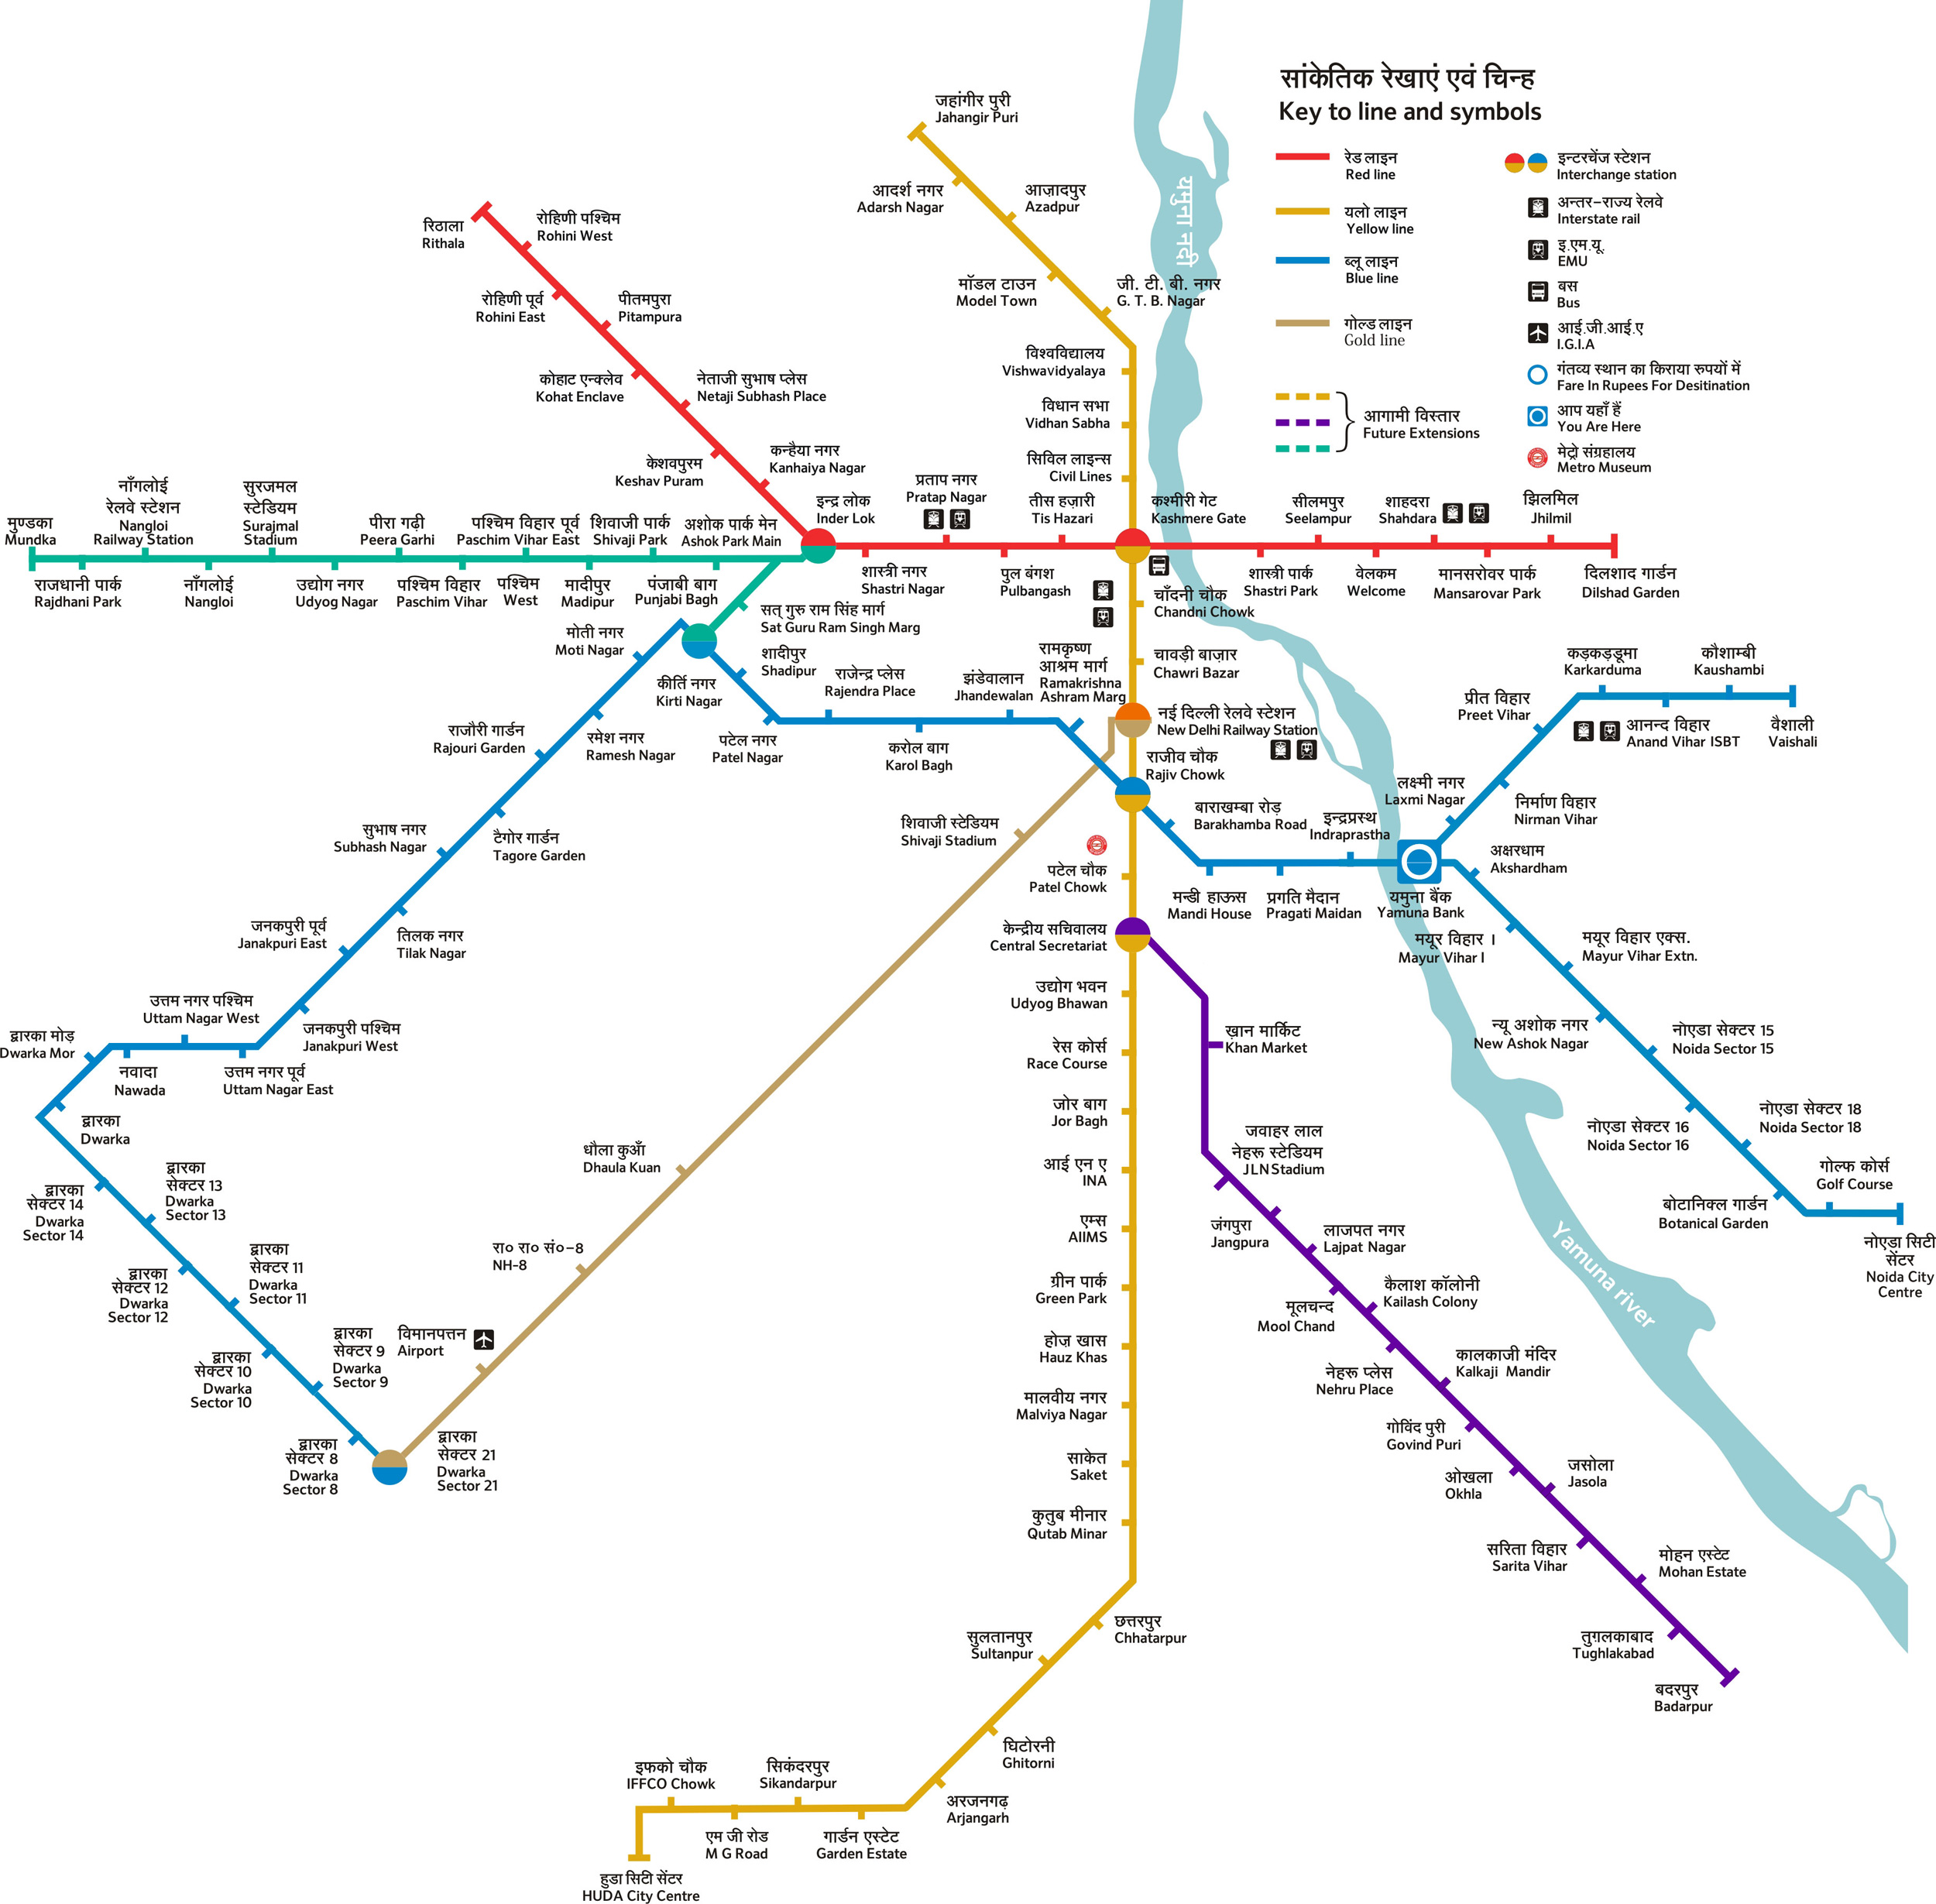 What is the nearest metro station to the Hermitage 100